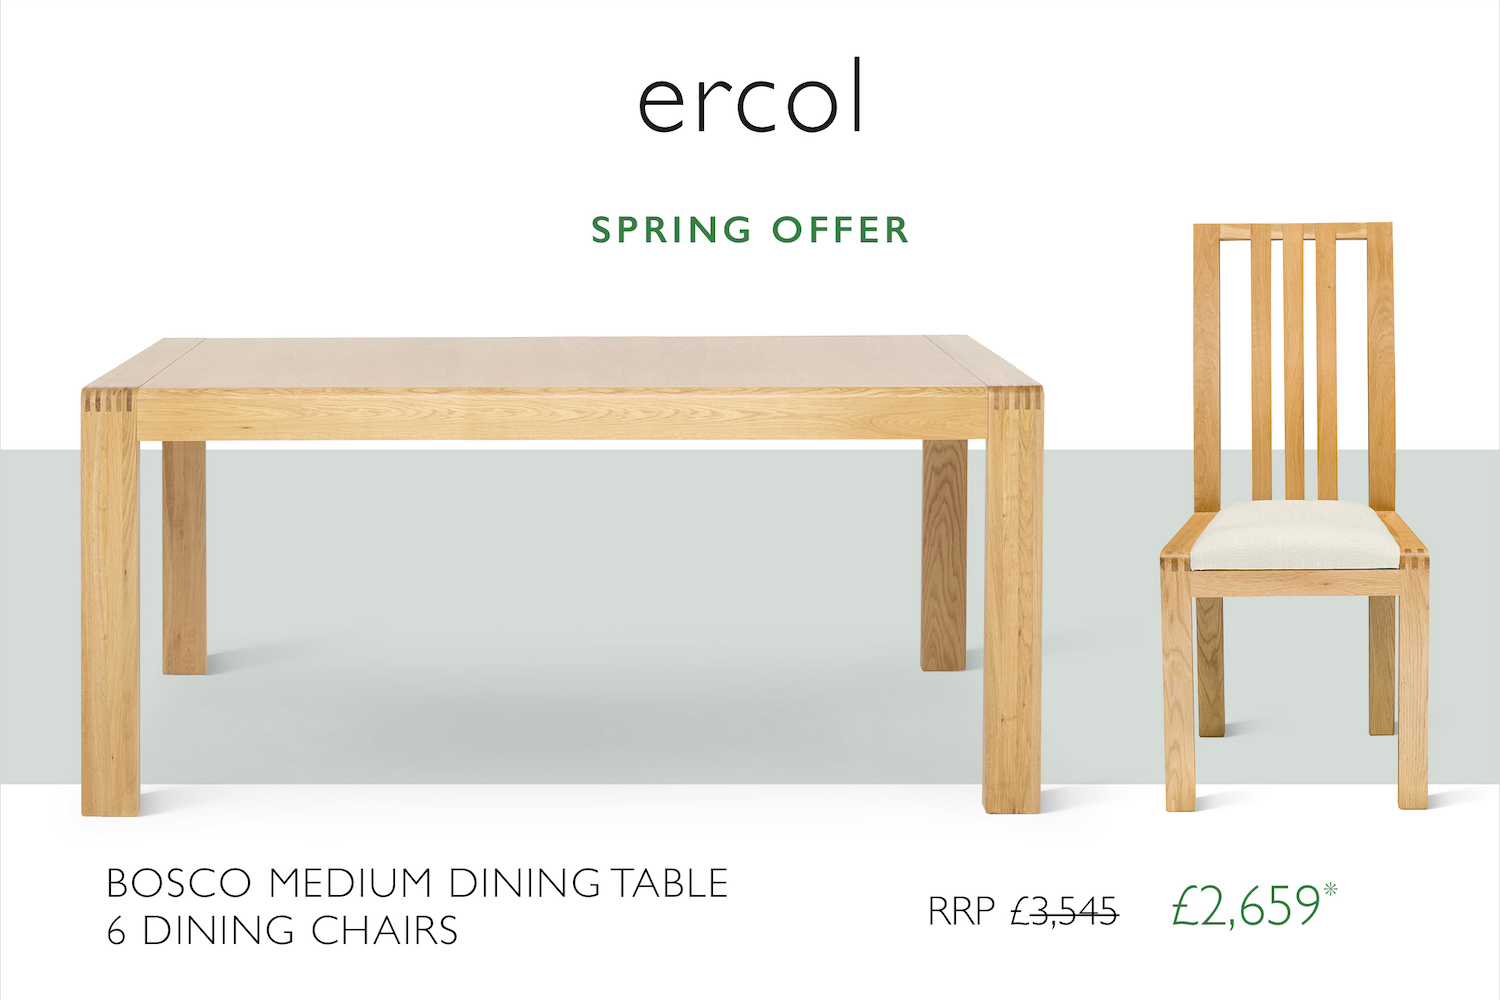 ercol spring 2021 dining promotion